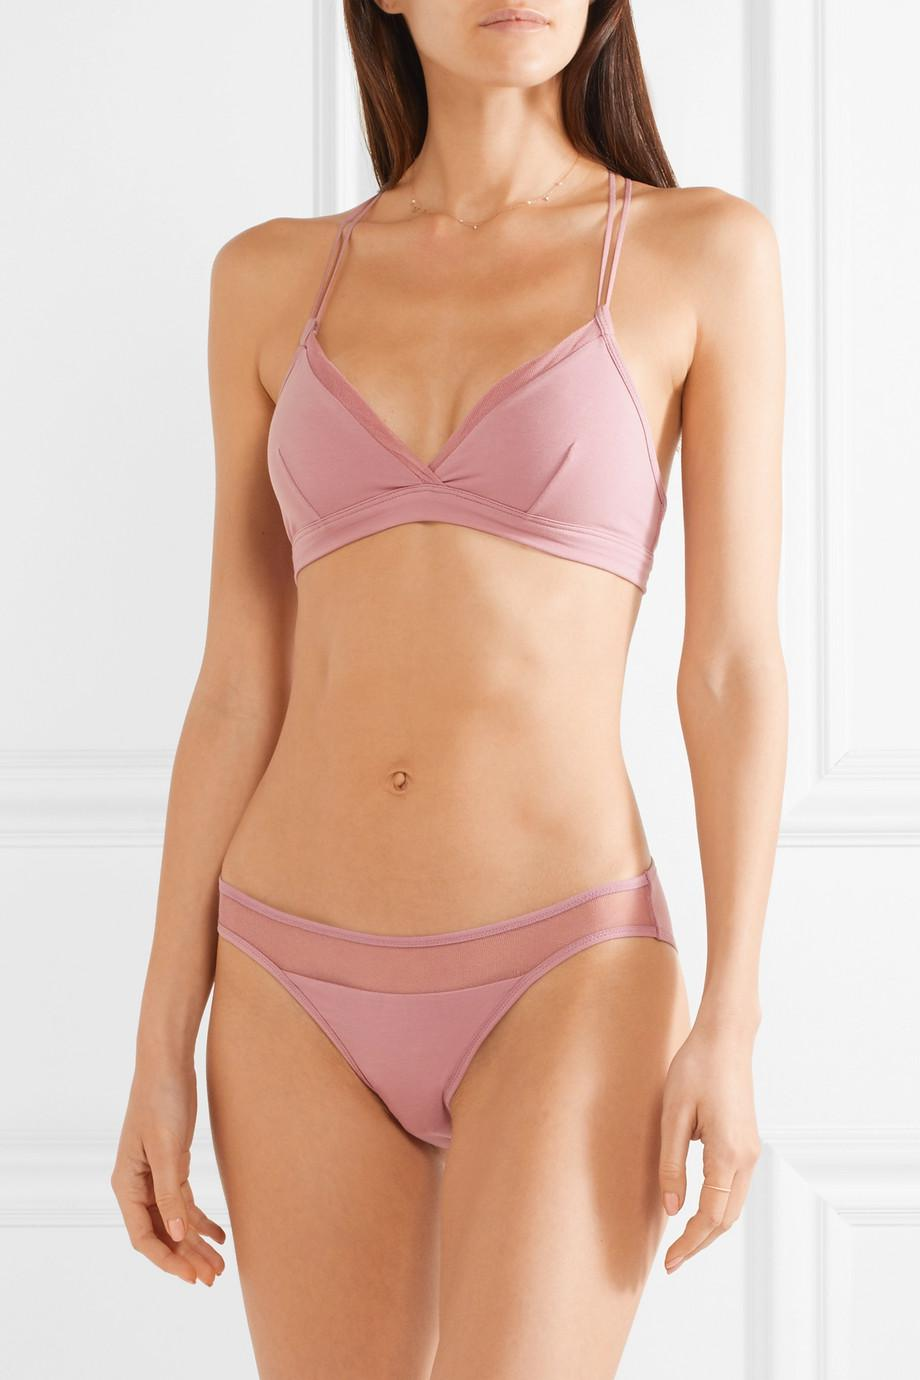 Orla Tulle-trimmed Stretch Organic Pima Cotton-jersey Soft Cup Bra - Antique rose Skin Free Shipping For Nice Cheap Best Store To Get Largest Supplier Cheap Online Fake For Sale Cheap Sale 100% Guaranteed xnmfOXPuZT